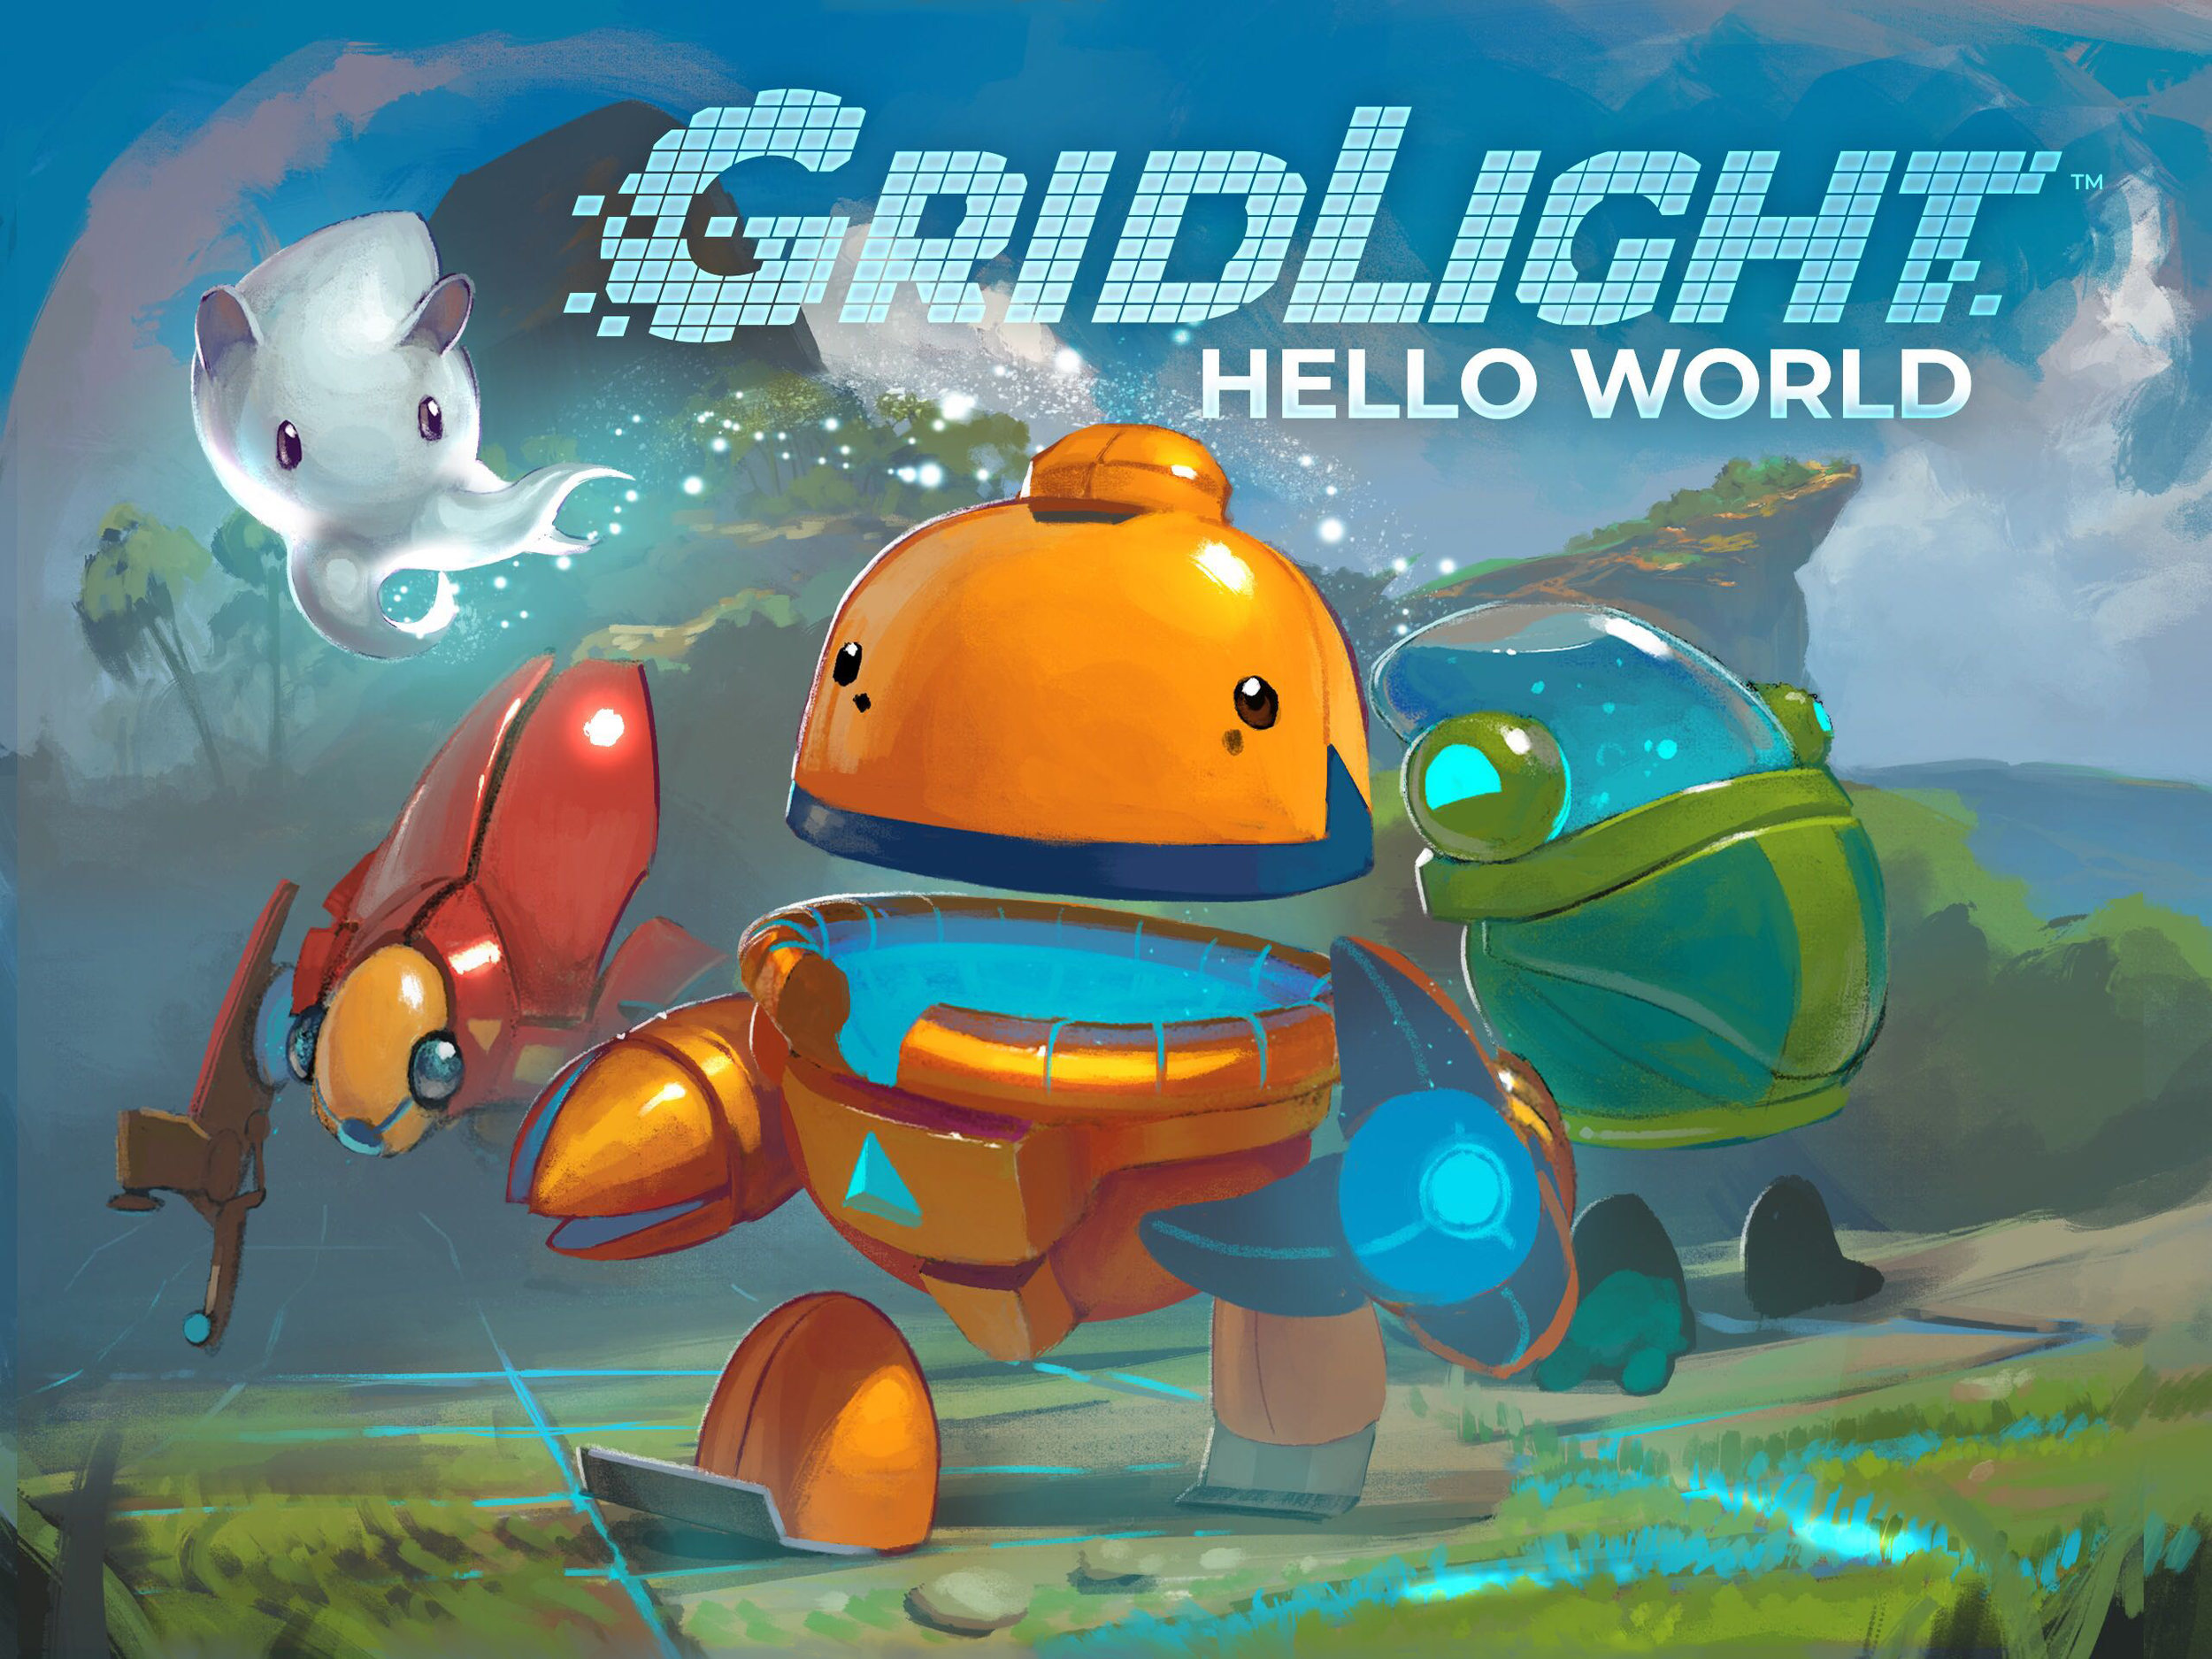 GridLight: Hello World introduces coding fundamentals — sequencing & loops. - We integrated these coding principles directly into the gameplay, so even those completely new to computer science can experience that it's fun, creative, and accessible.Through playing, you'll put these K-12 Computer Science Framework concepts into practice:> Algorithms and Programming — learn this every turn by structuring your Command Line sequence> Computing Systems — shown by the relationship between software (the Command Line) and hardware (your Bot Friend)> Impacts of Computing — use programming to solve a challenge (restoring the Lighthouse for the Festival)